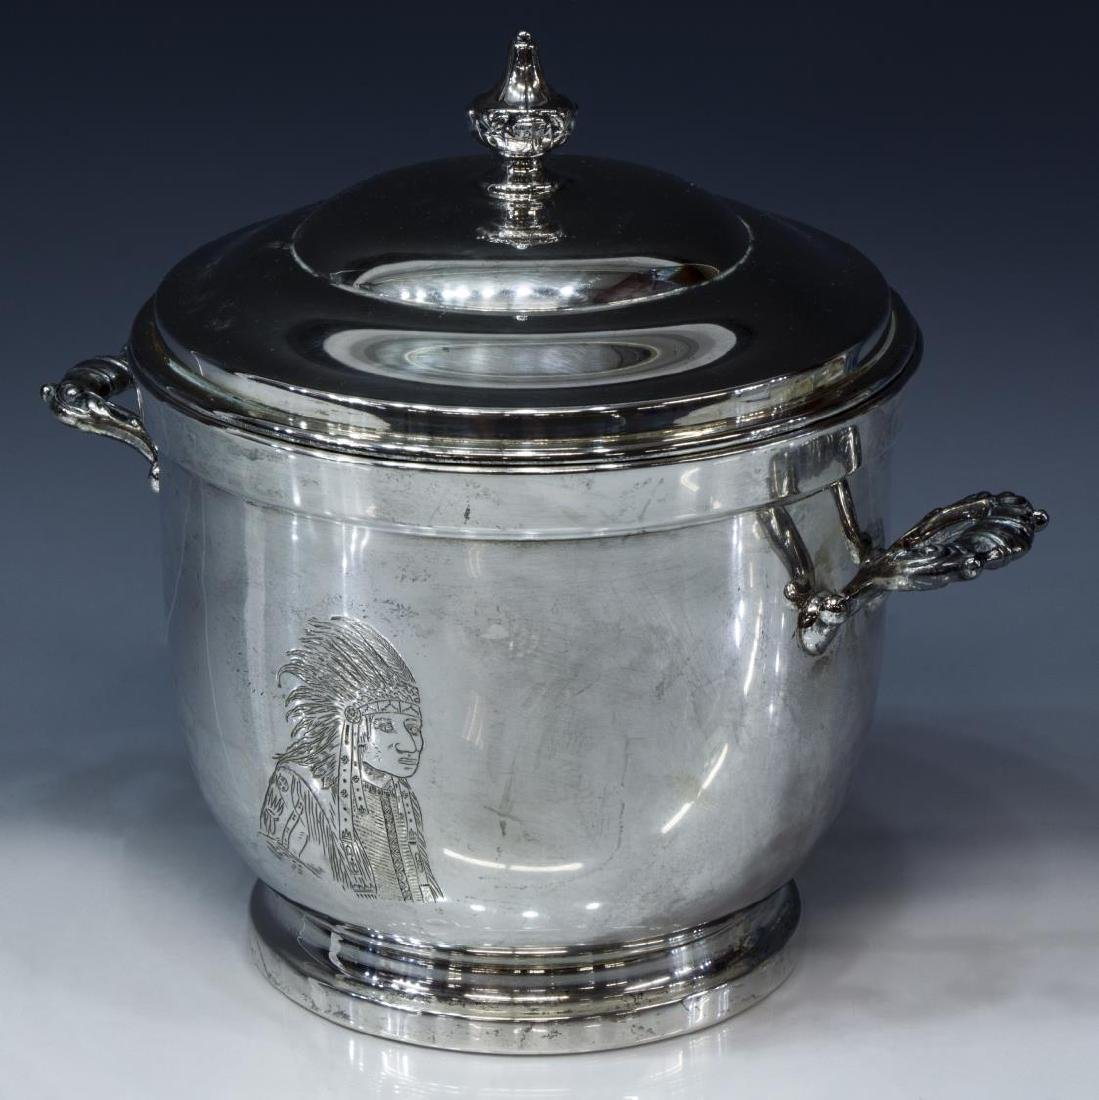 POOLE STERLING SILVER INSULATED ICE BUCKET